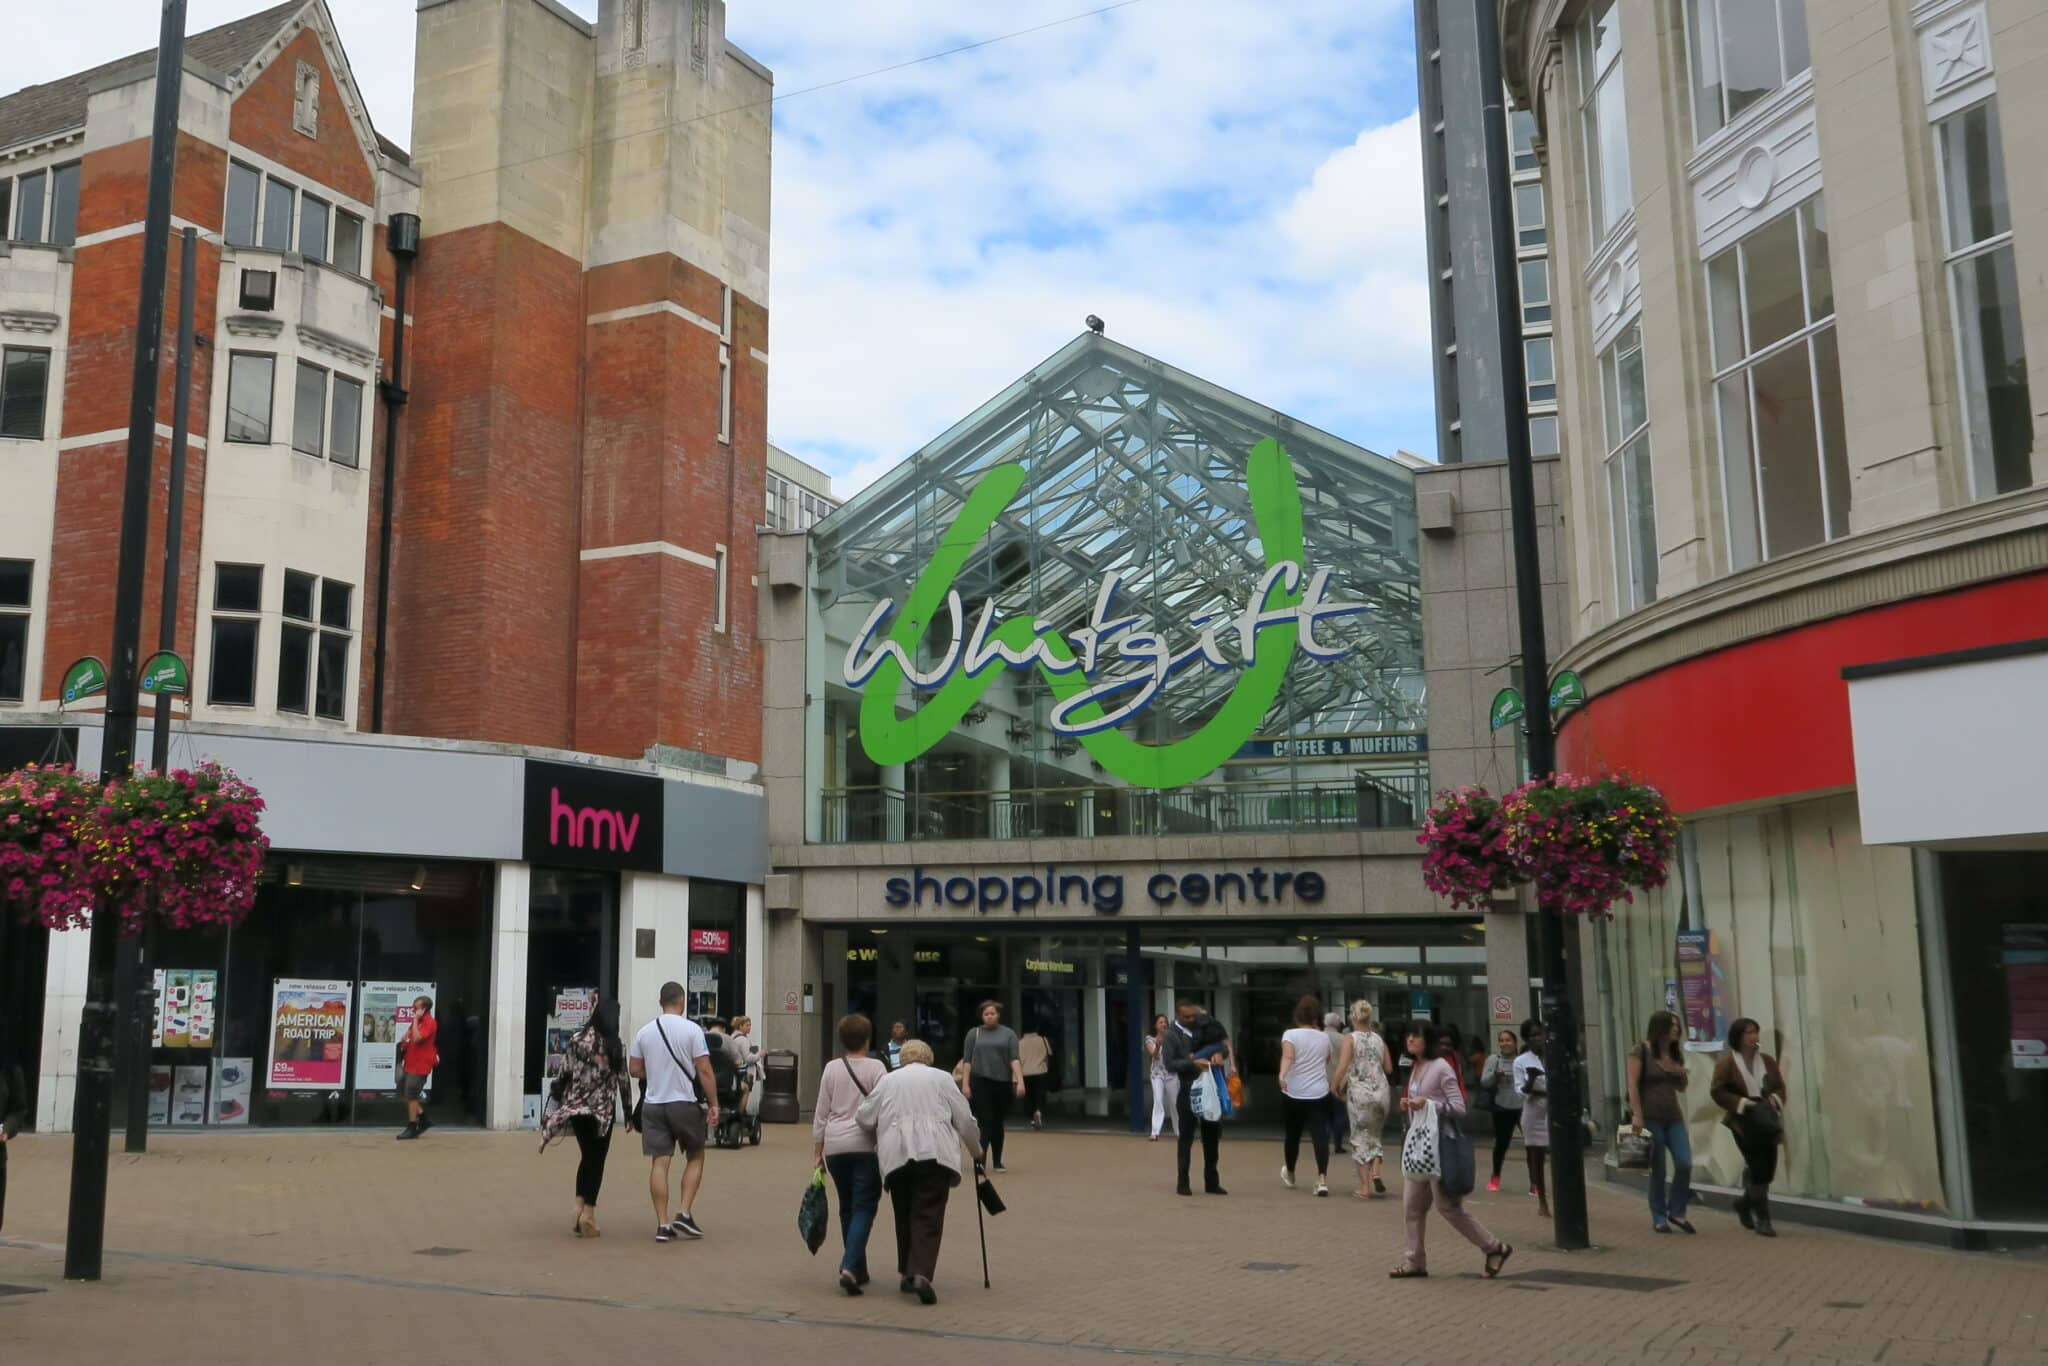 Croydon Council becomes second council in two decades to declare bankruptcy